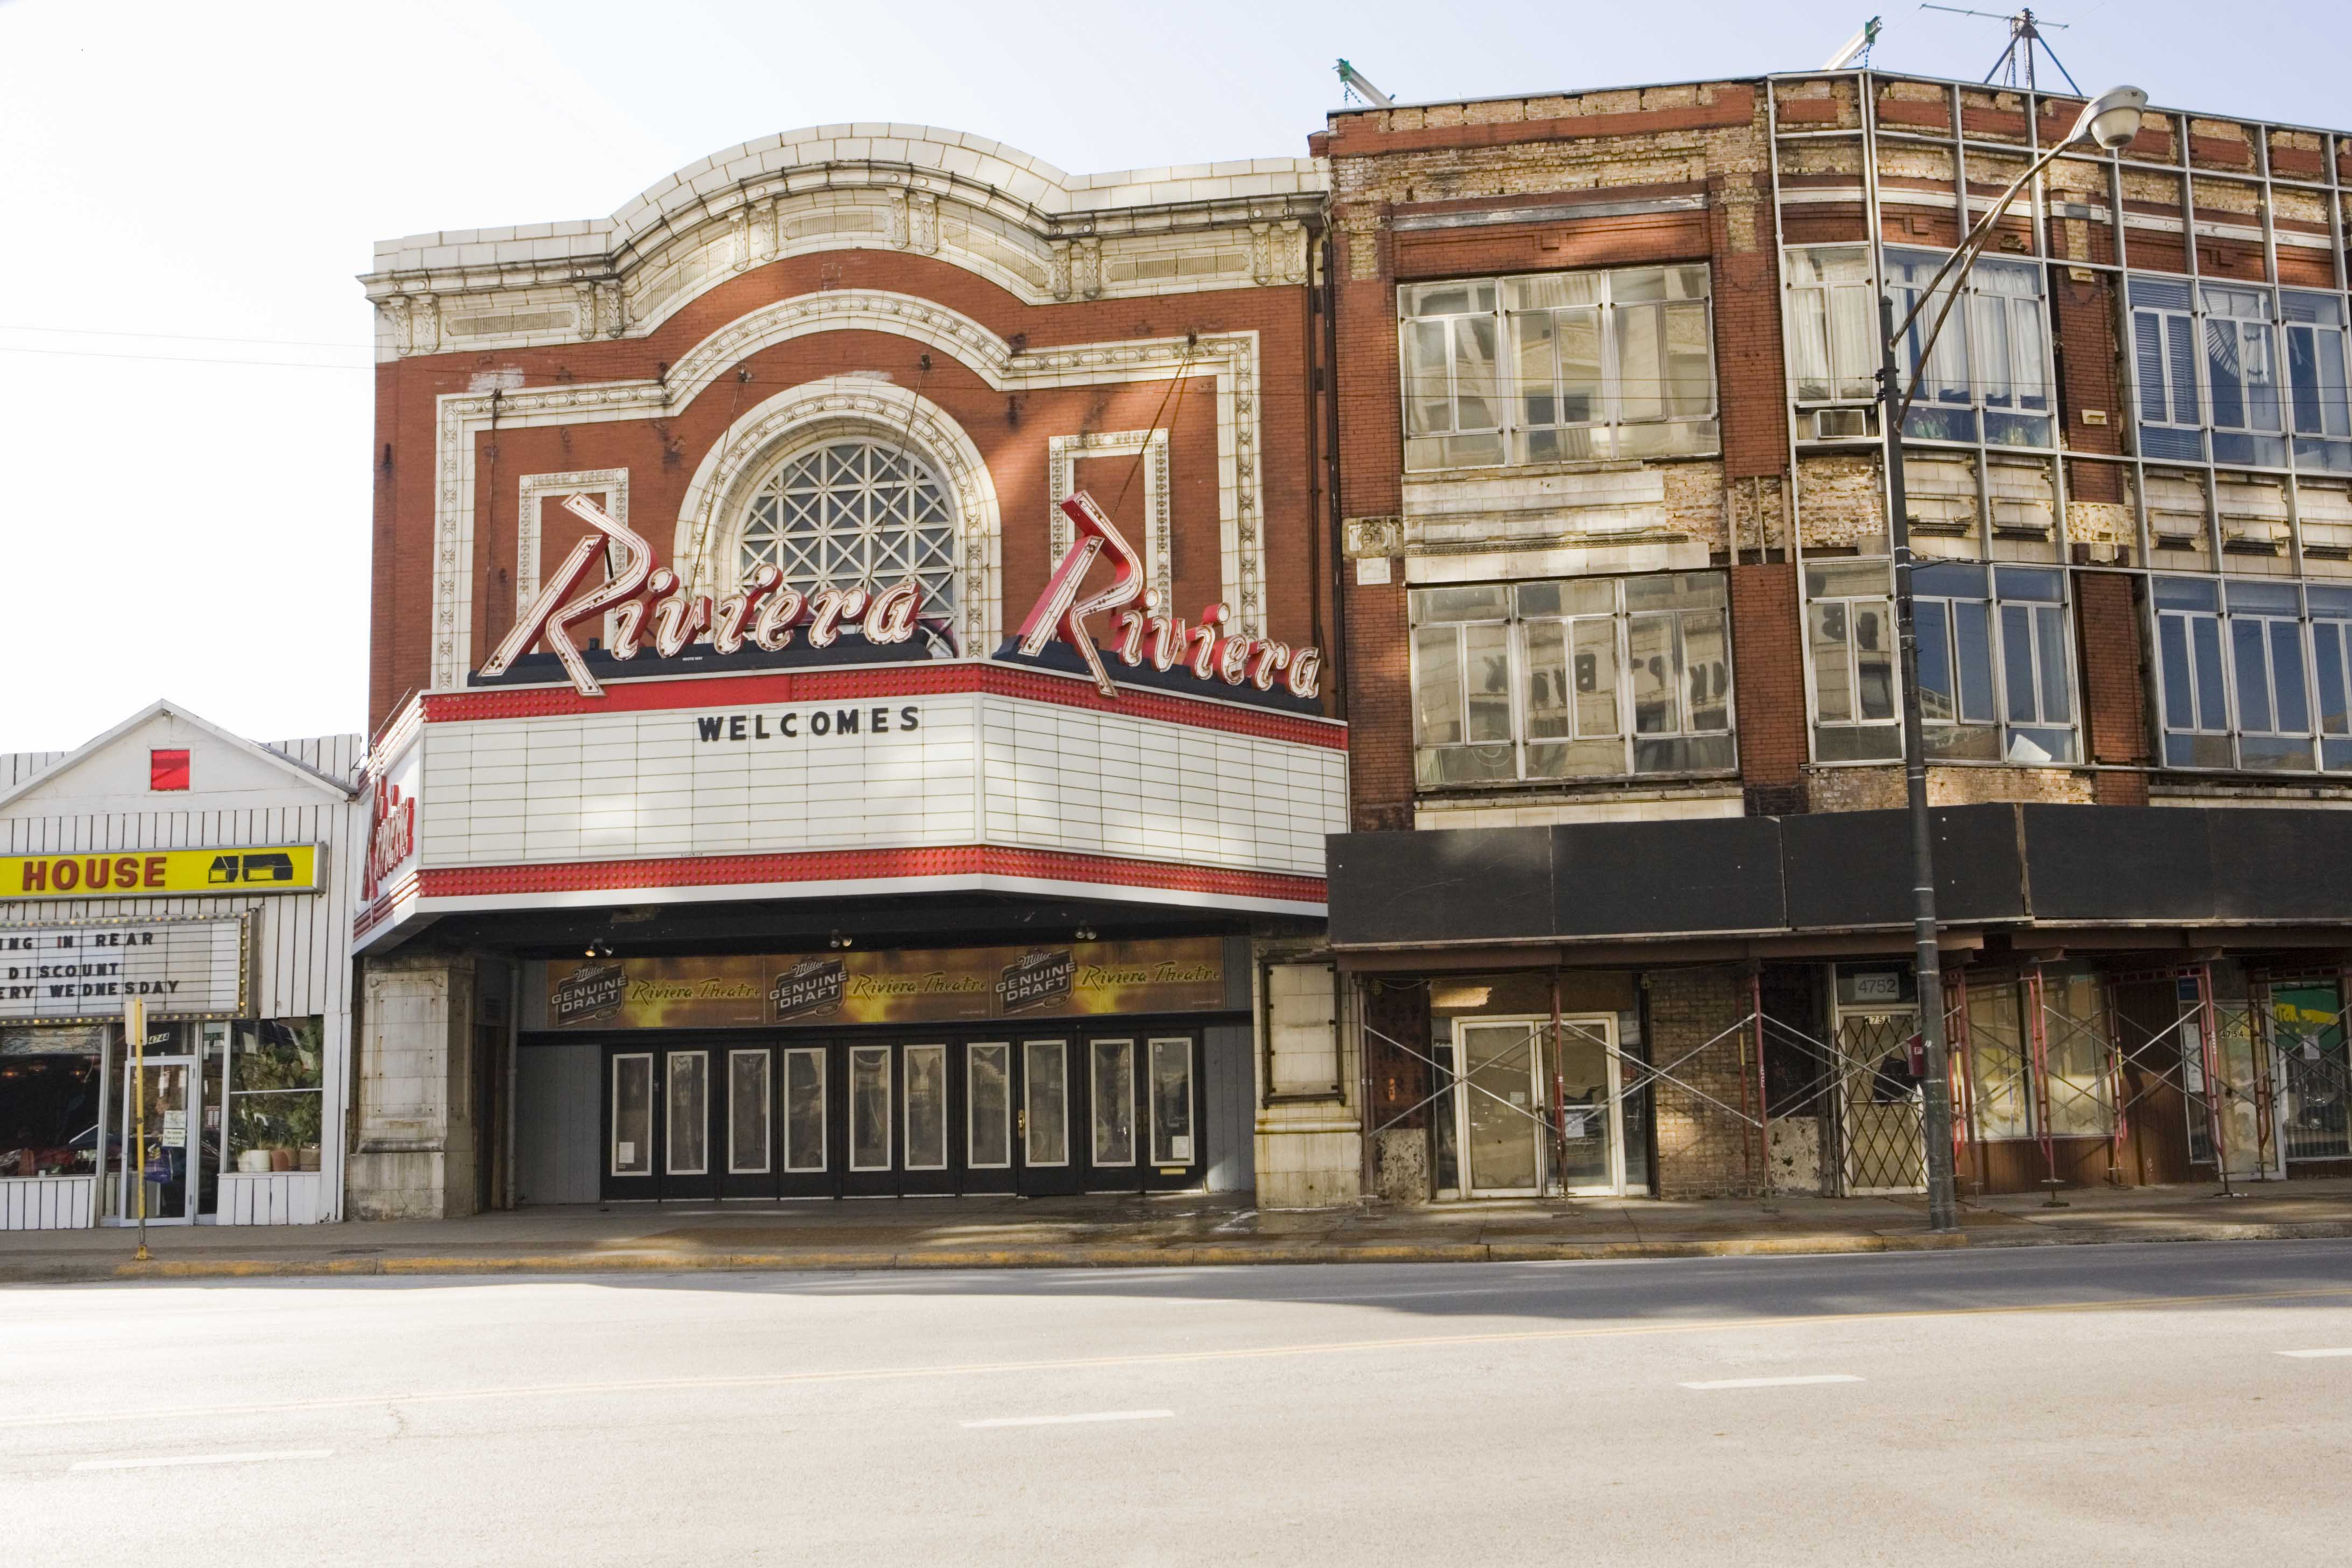 The Uptown entertainment district includes The Riviera Theatre.